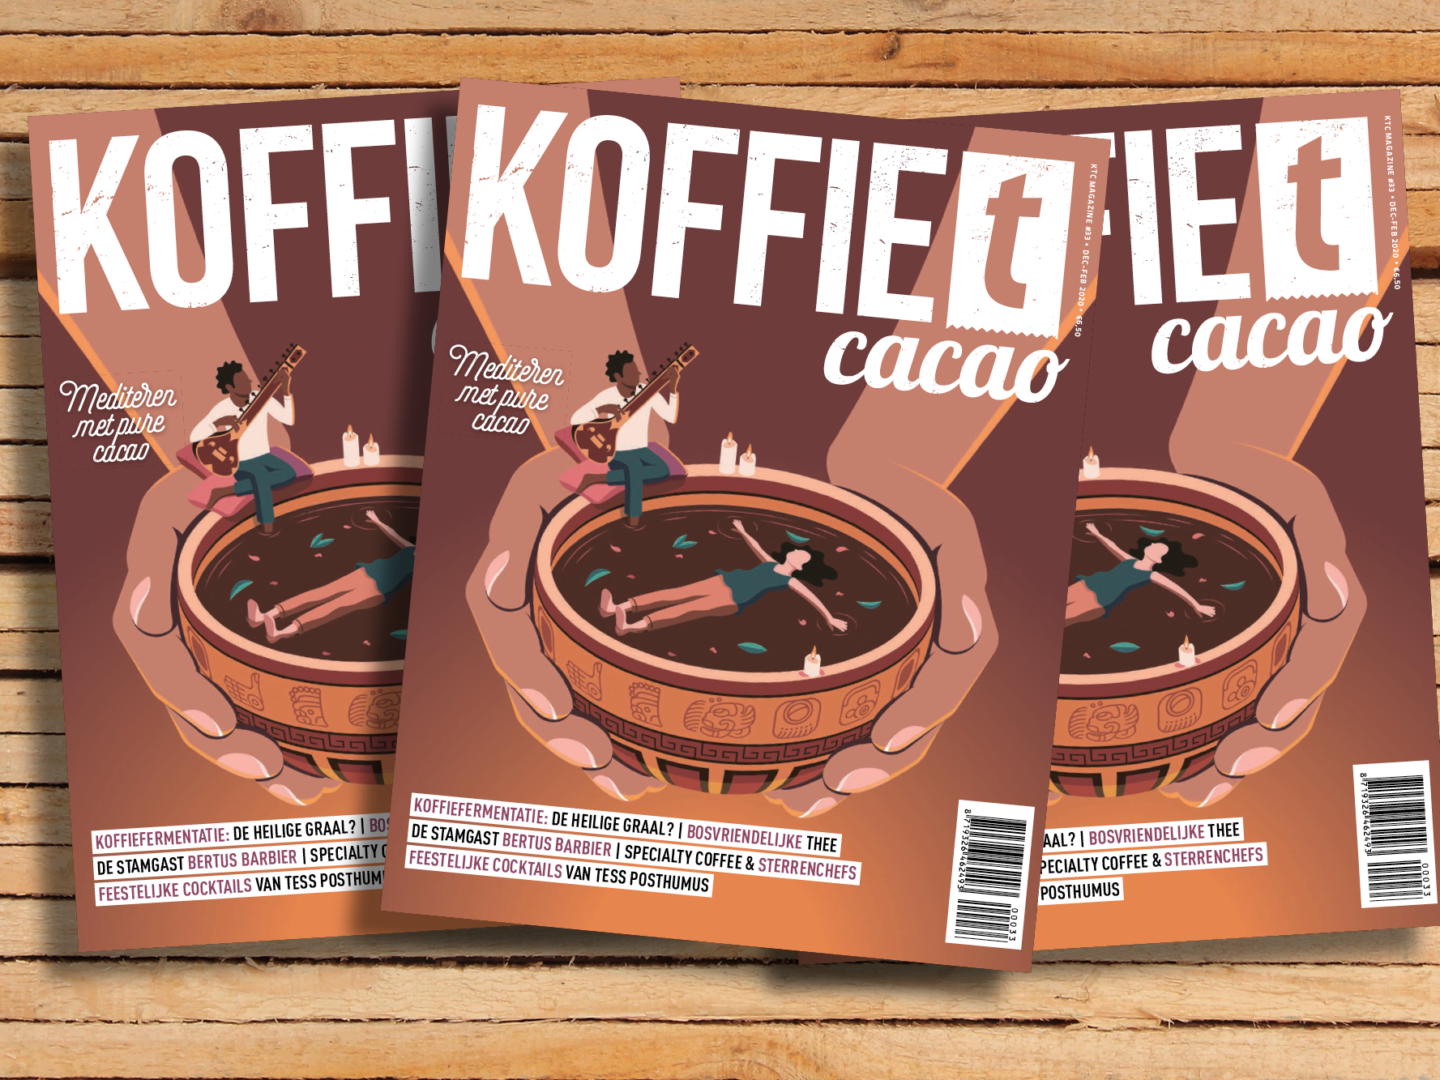 koffieTcacao 33: duurzame thee, cacaoceremonies en koffiefermentatie